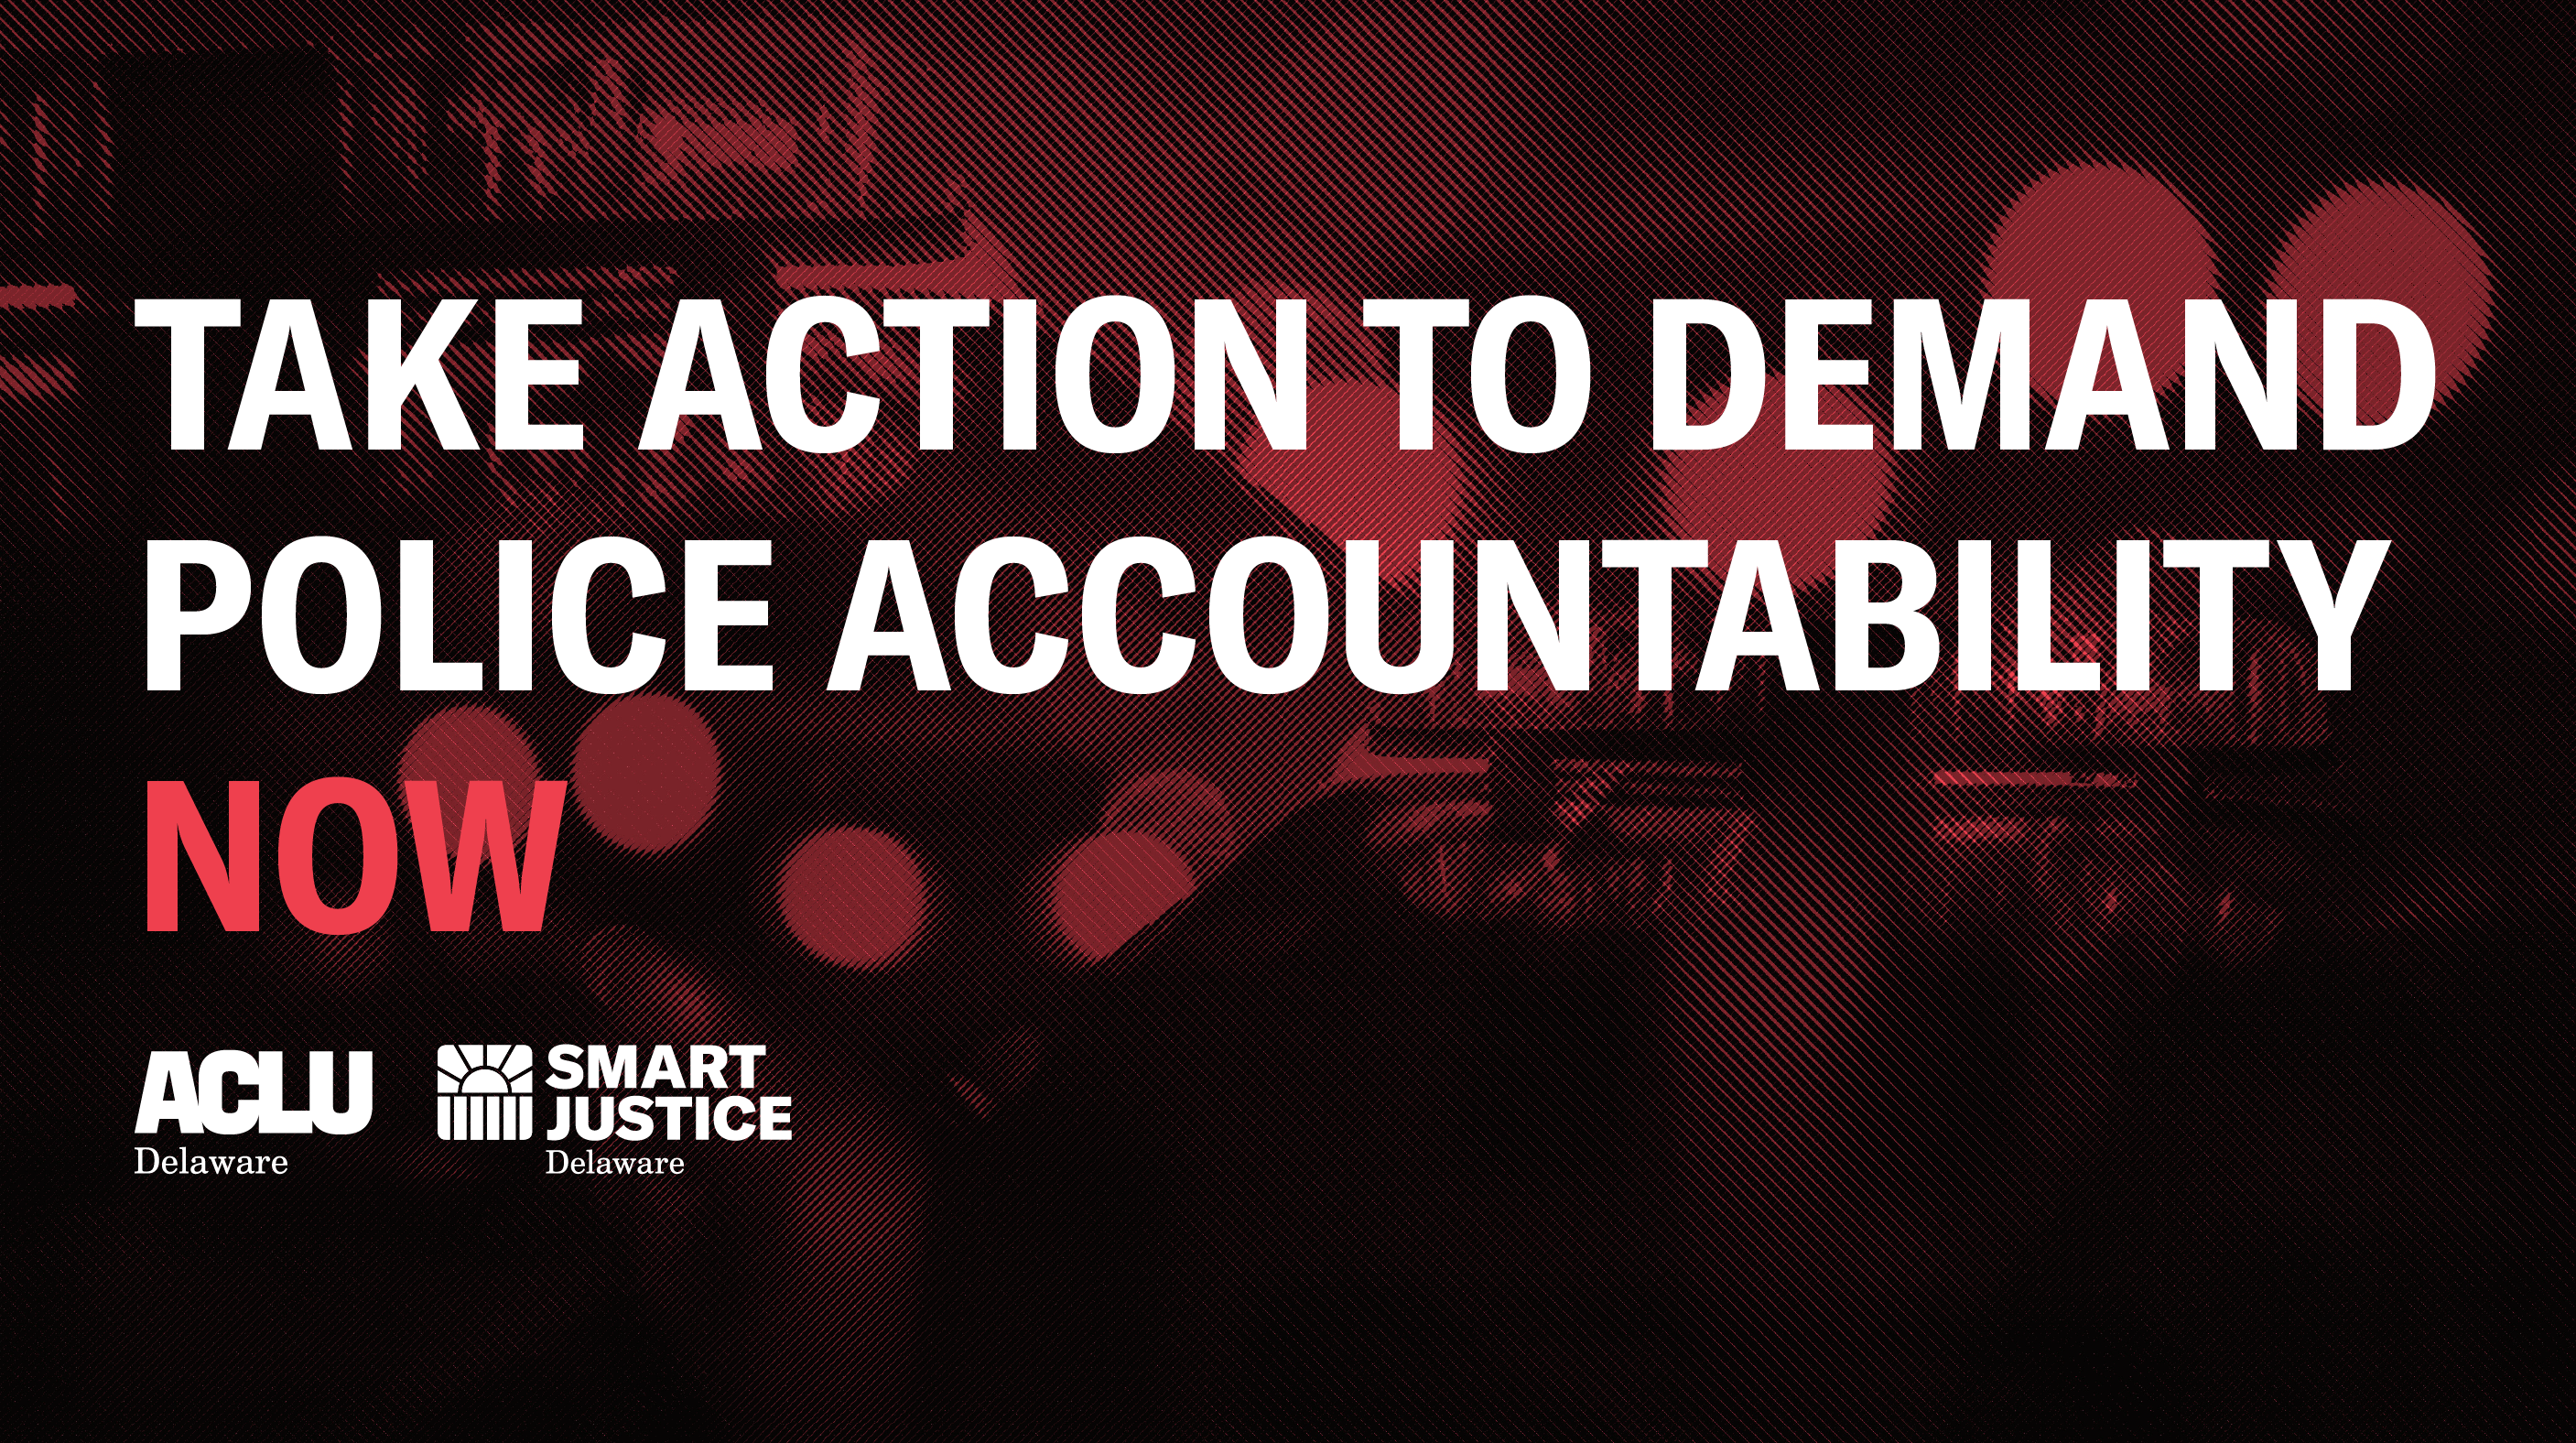 Take Action to Demand Police Accountability NOW.